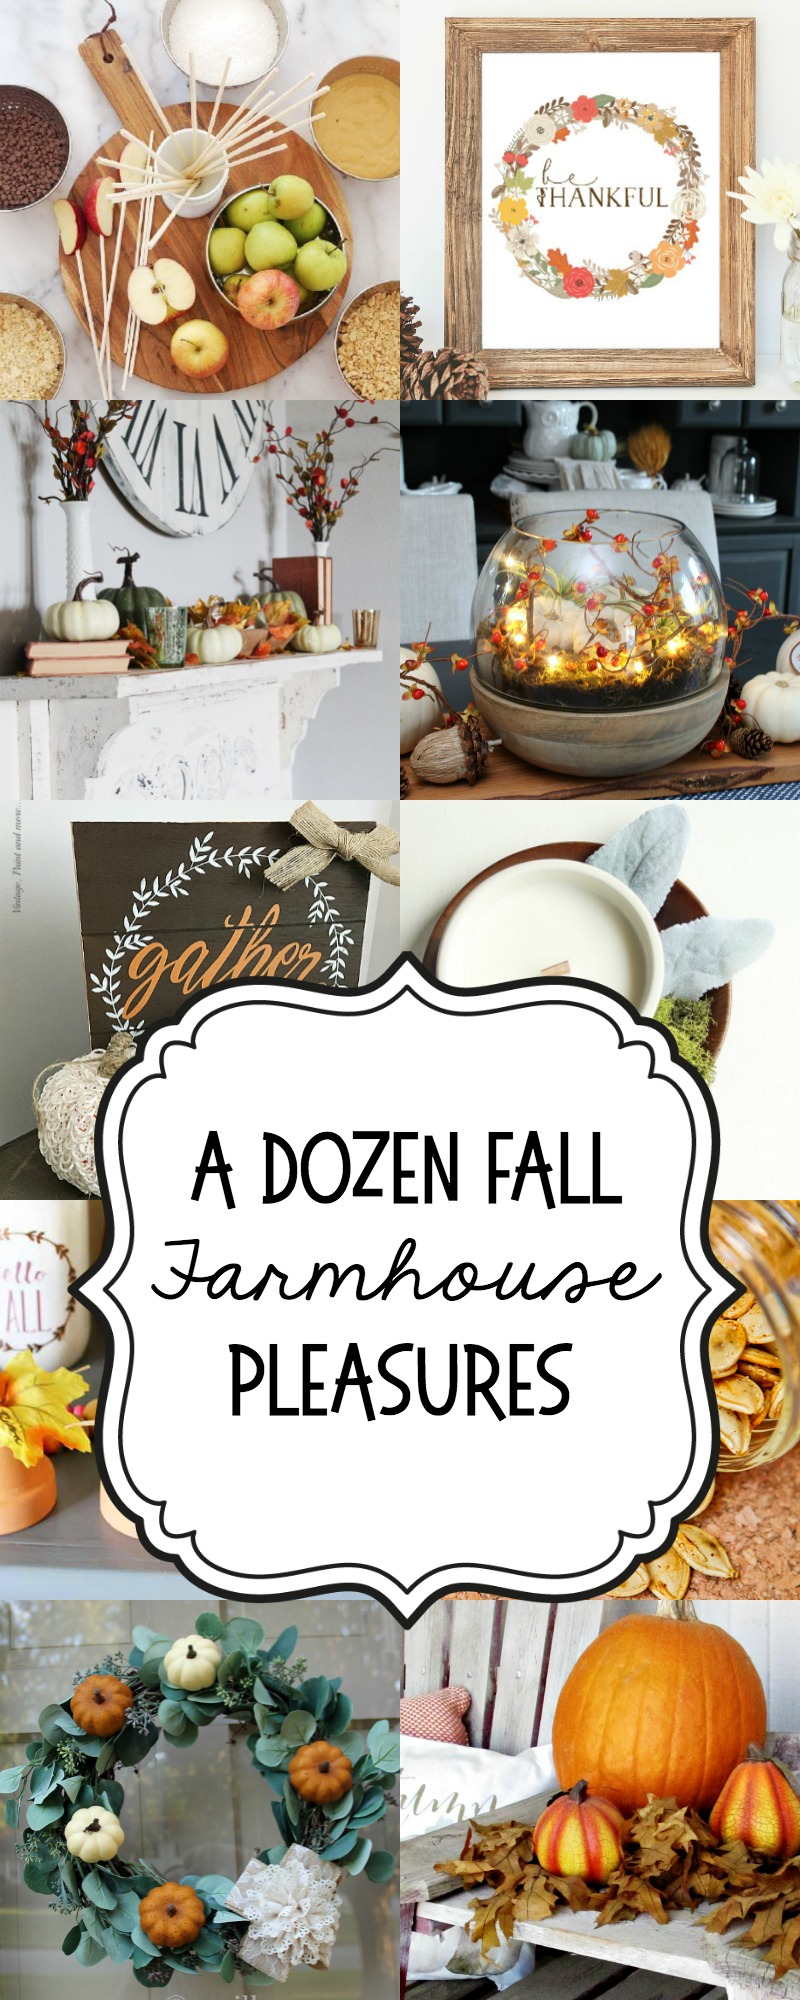 Fall Modern Farmhouse DIYS and Recipes